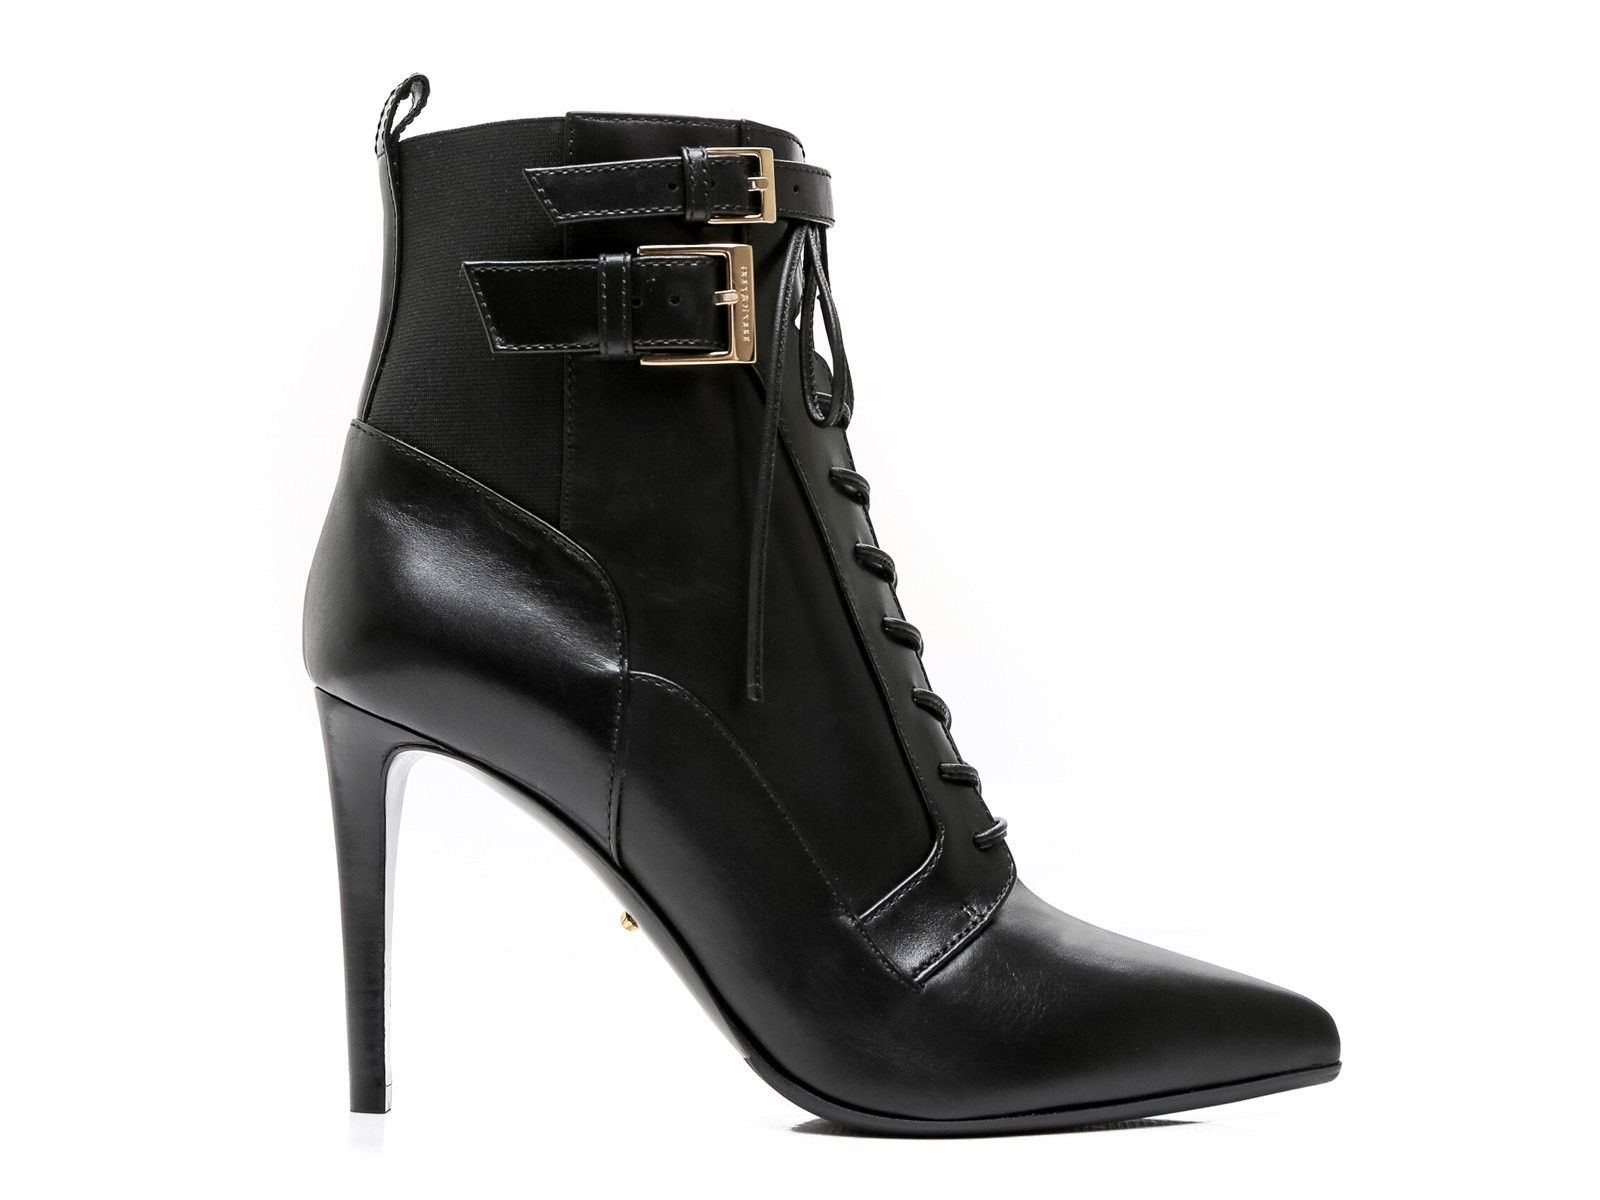 finest selection f6ce6 eb3ef Sergio Rossi | Shoes Shoes Shoes in 2019 | Sergio rossi ...